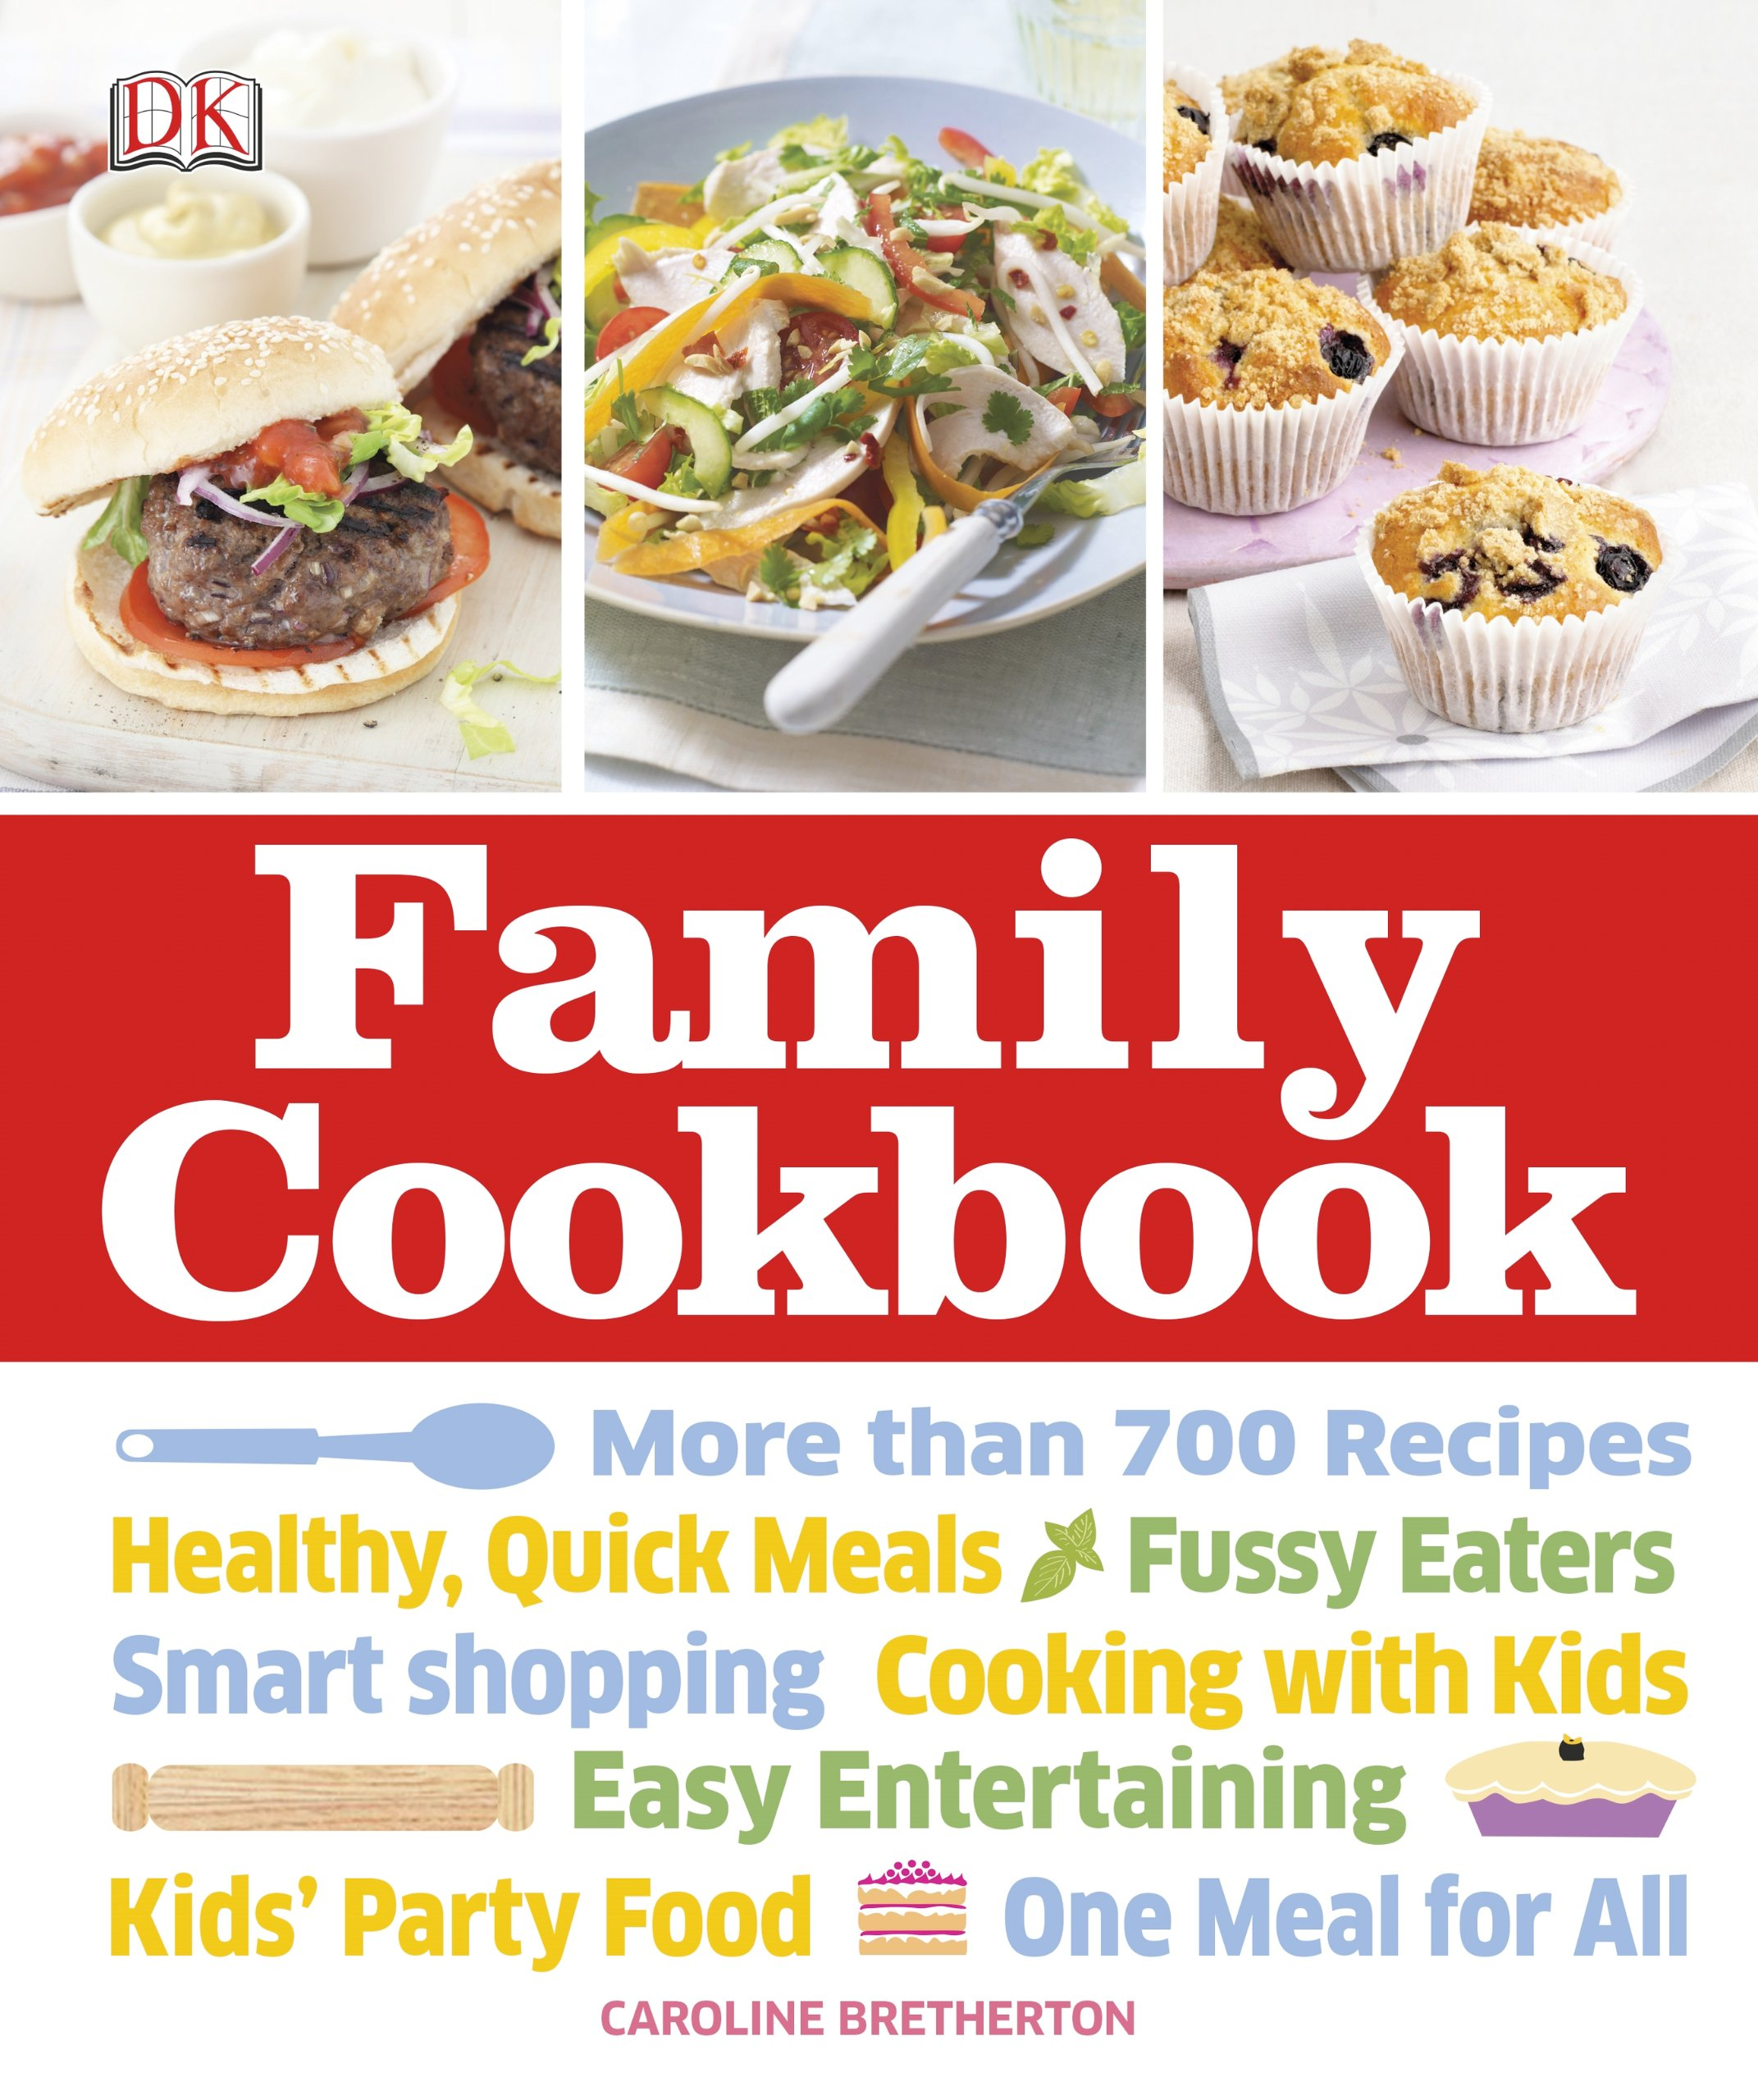 Family cookbook caroline bretherton 9781465408464 amazon books forumfinder Choice Image